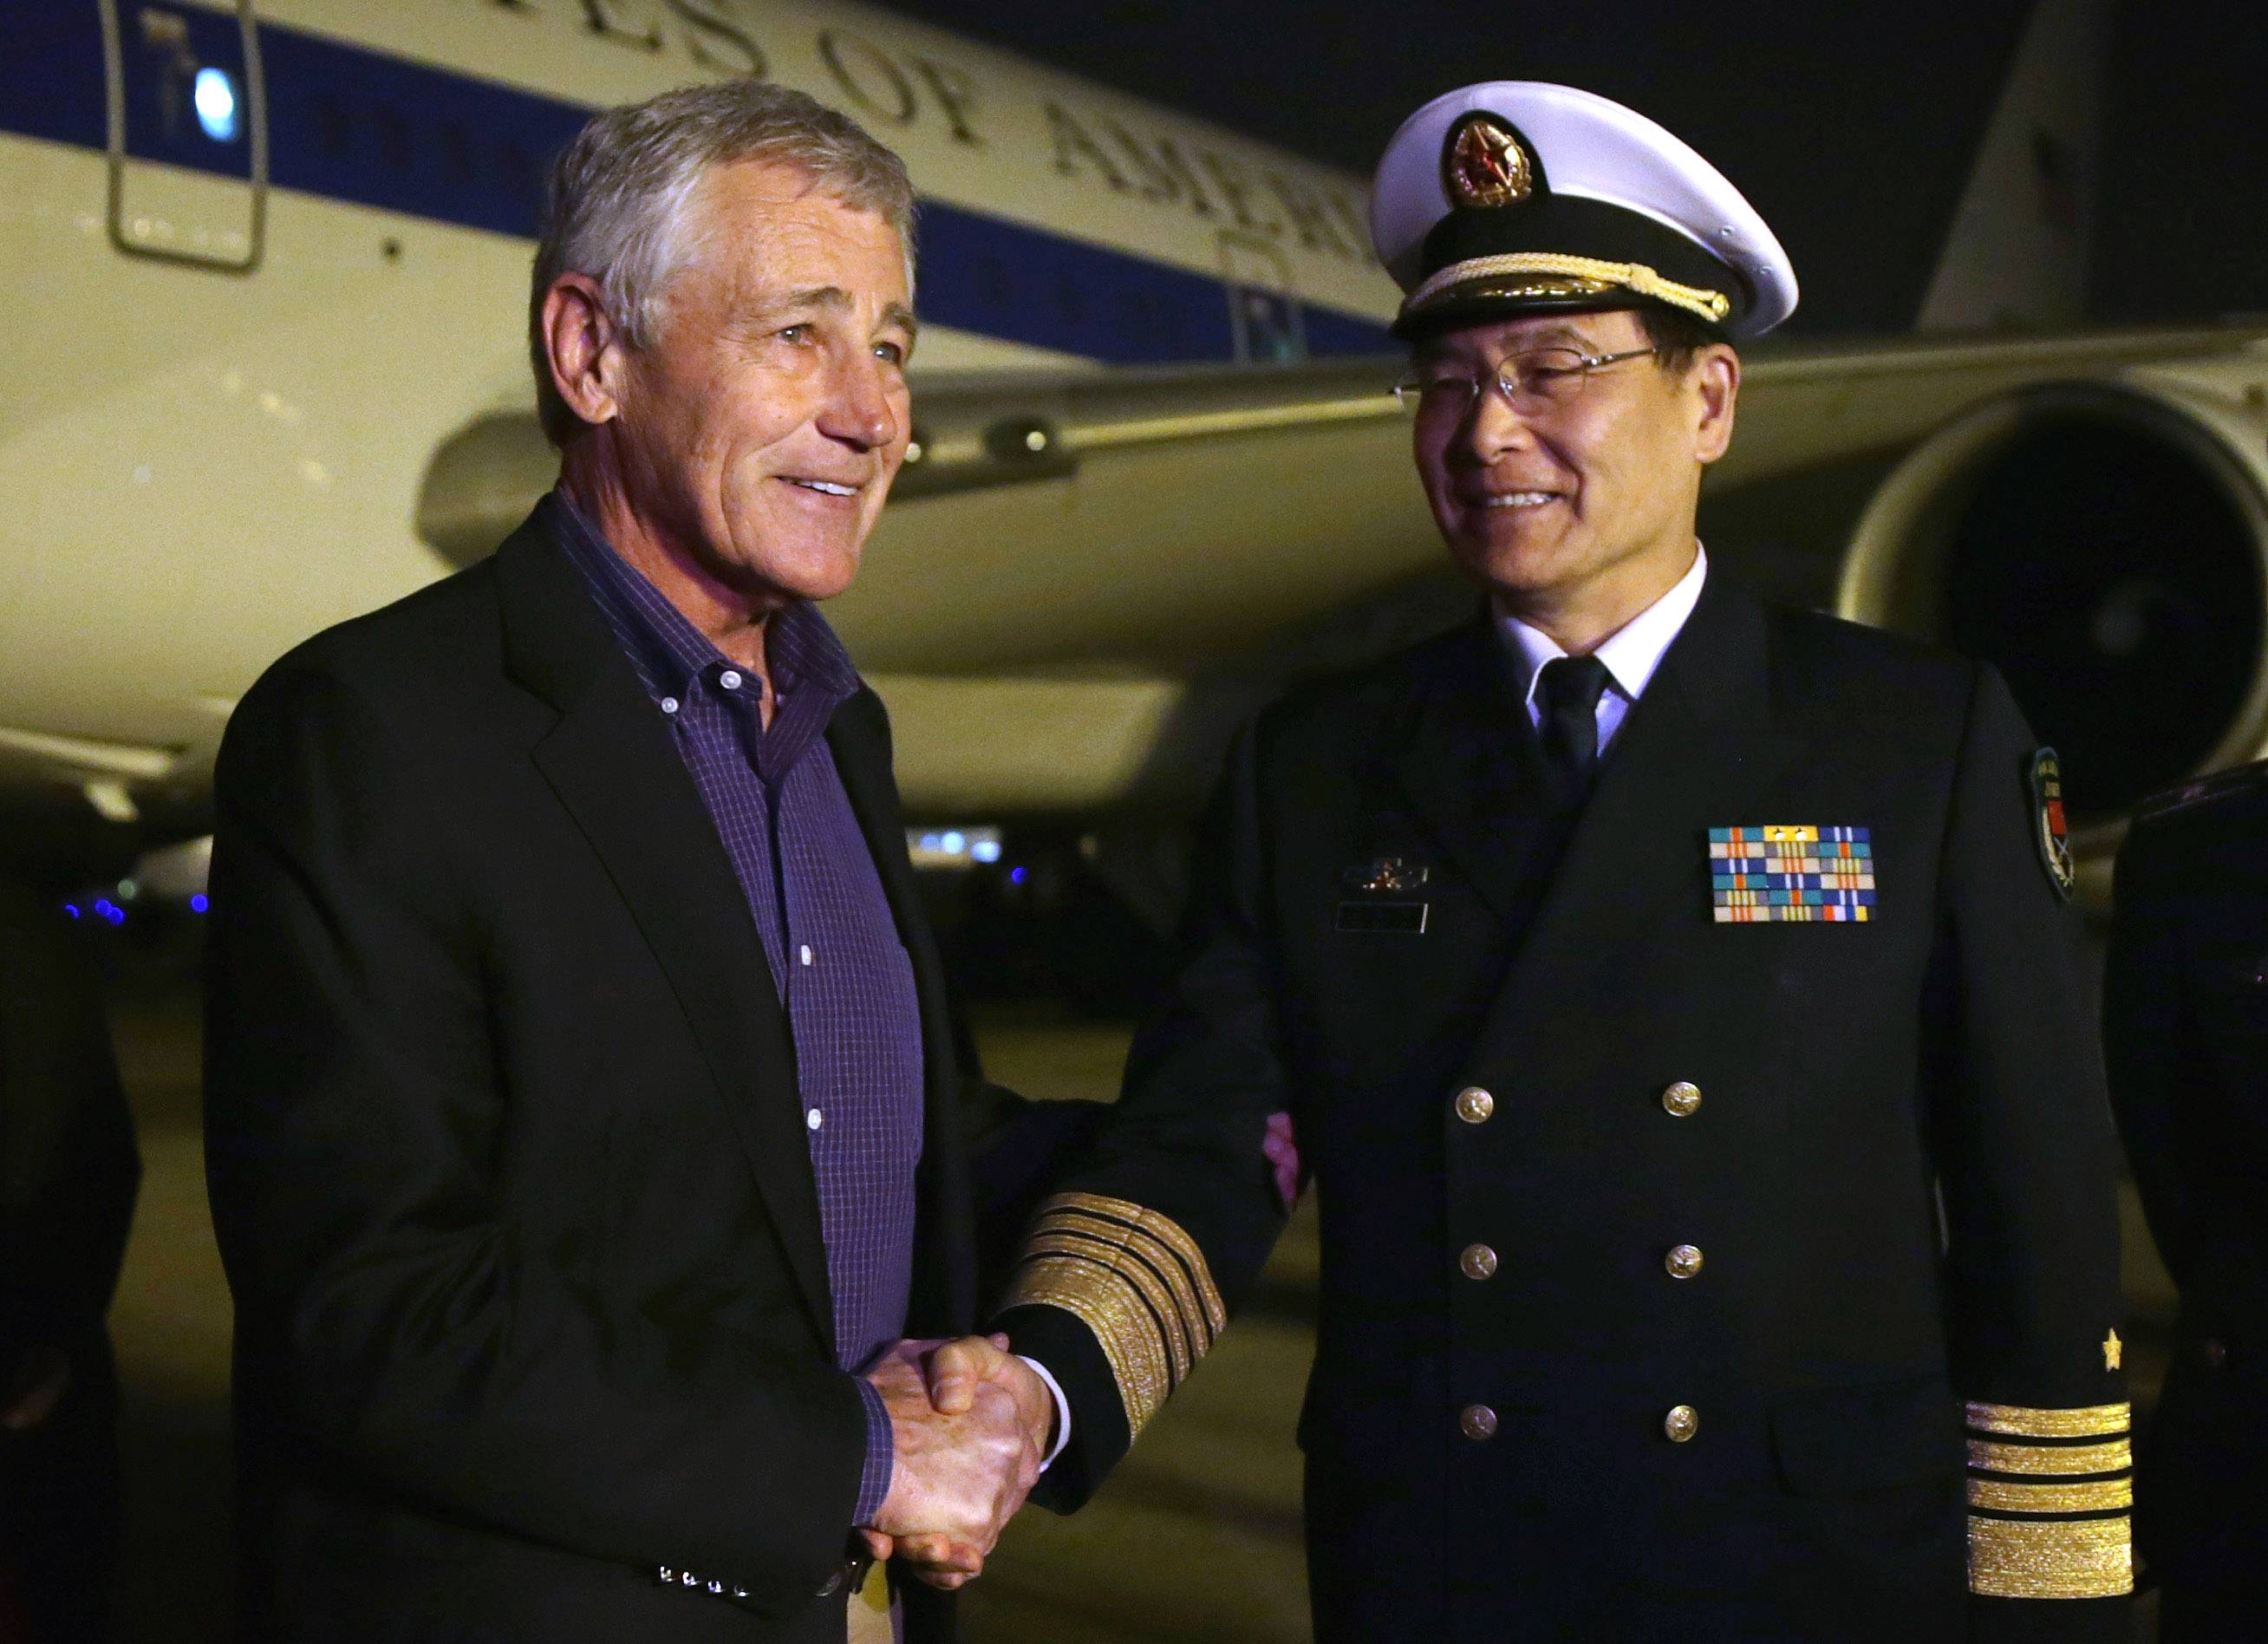 Defense Secretary Chuck Hagel is welcomed by Sun Jianguo, Deputy Chief of General Staff of the Chinese People's Liberation Army, upon his arrival at Beijing International in Beijing, Monday, Airport April 7, 2014. Hagel arrived in Beijing Monday after a stop in Japan, where he told reporters that China must be more open about its military buildup and better respect its neighbors _ a pointed reference to Beijing's ongoing territorial dispute with Japan and others over remote islands in the East China Sea.